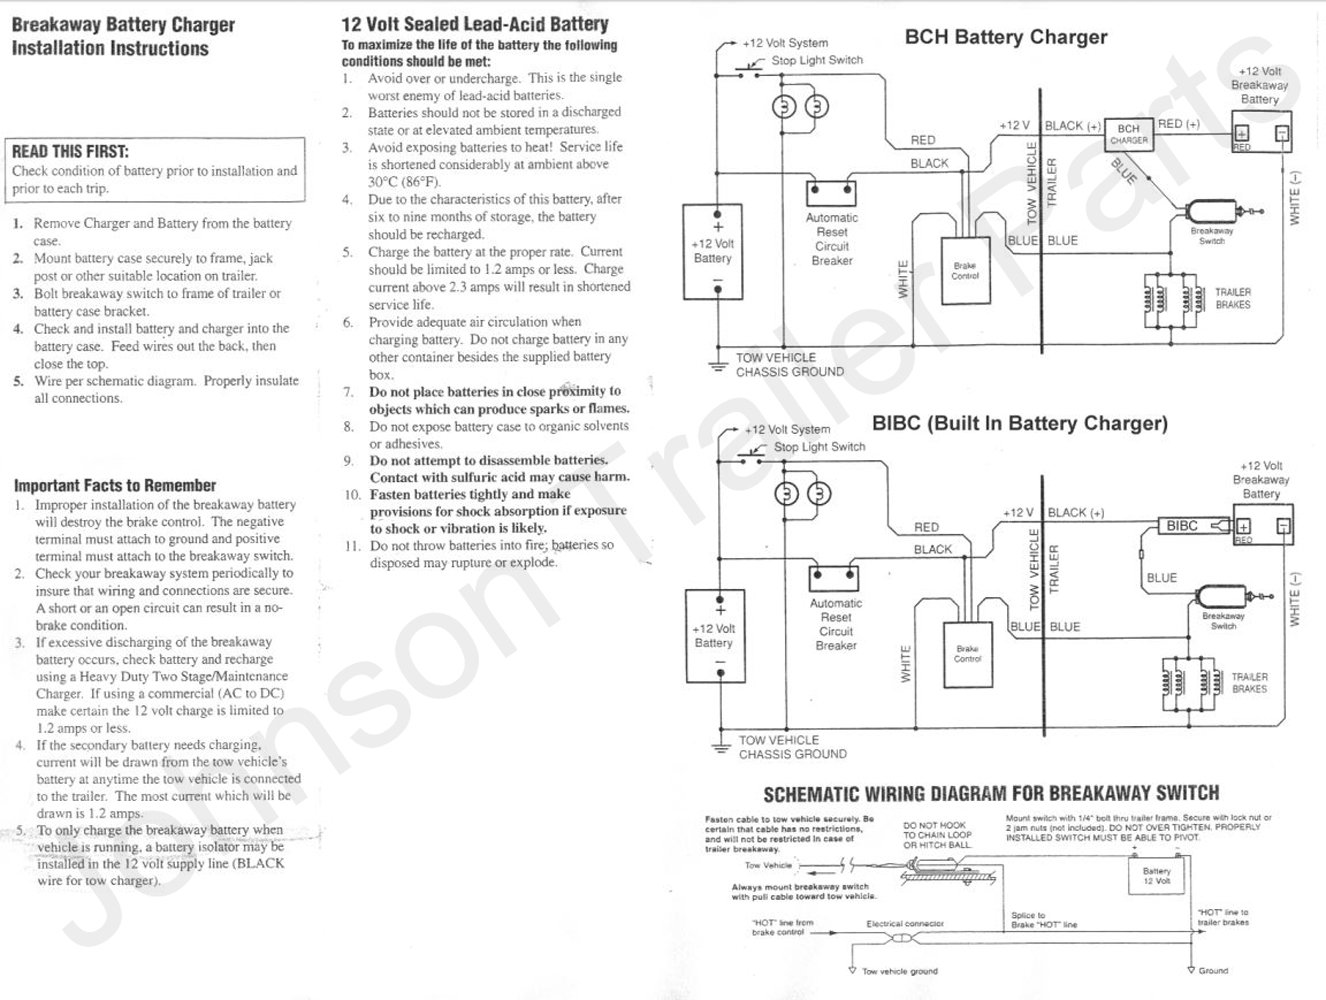 718PvzZr5ZL._SL1326_ amazon com trailer breakaway kit led readout breakaway switch tekonsha breakaway system wiring diagram at gsmportal.co